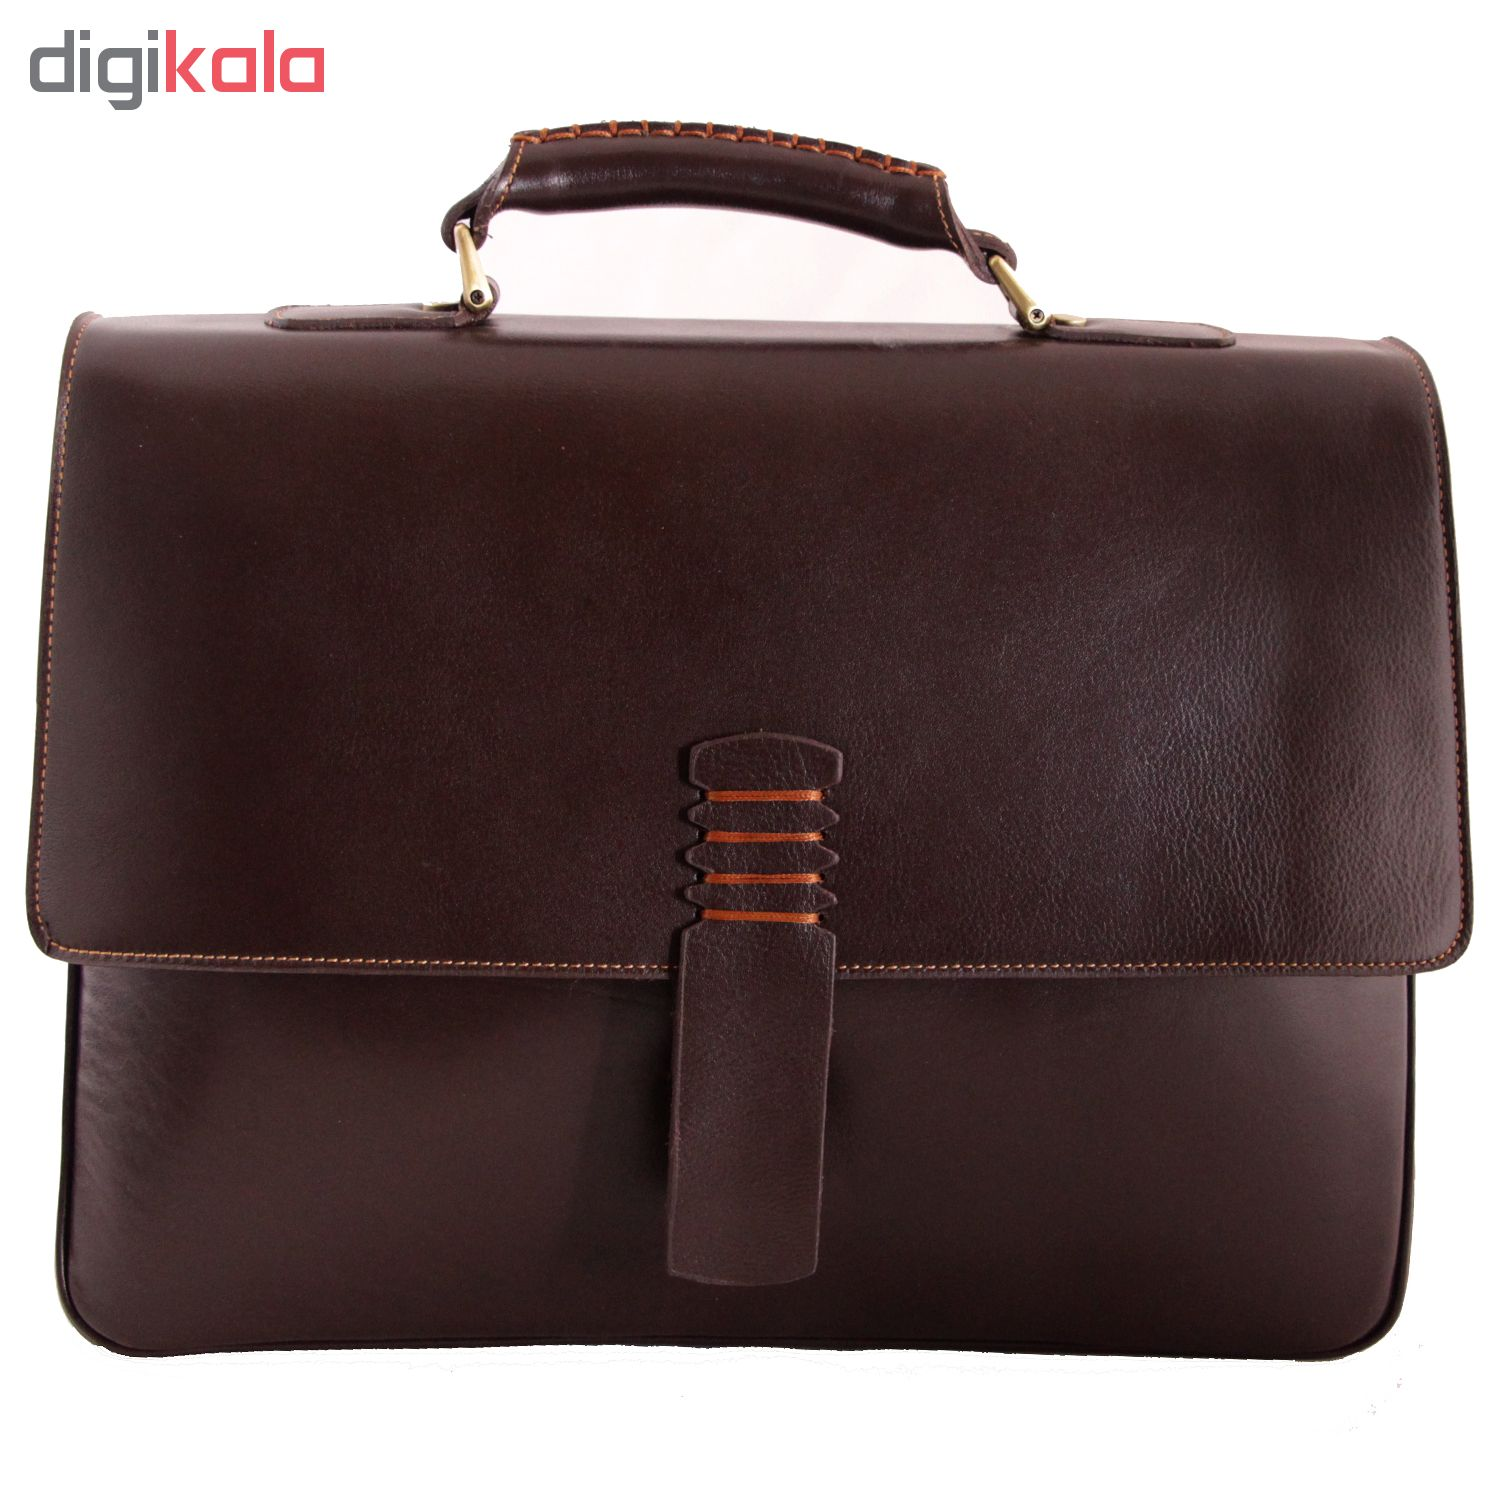 ADINCHARM natural leather office bag, DL4 Model